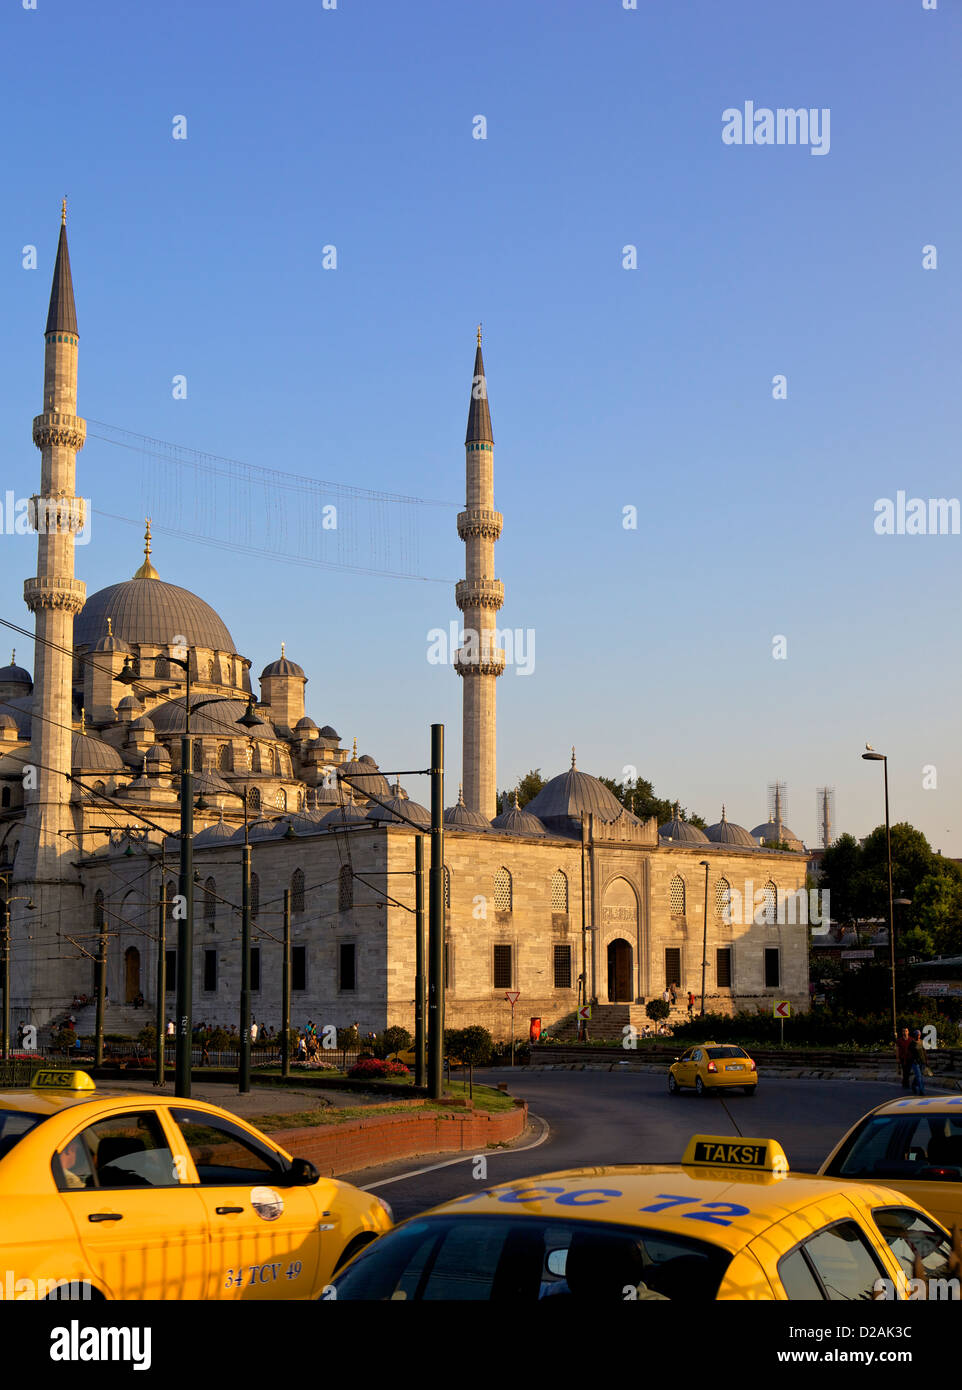 The Yeni Camii, or New Mosque, in Istanbul, Turkey, Eurasia - Stock Image